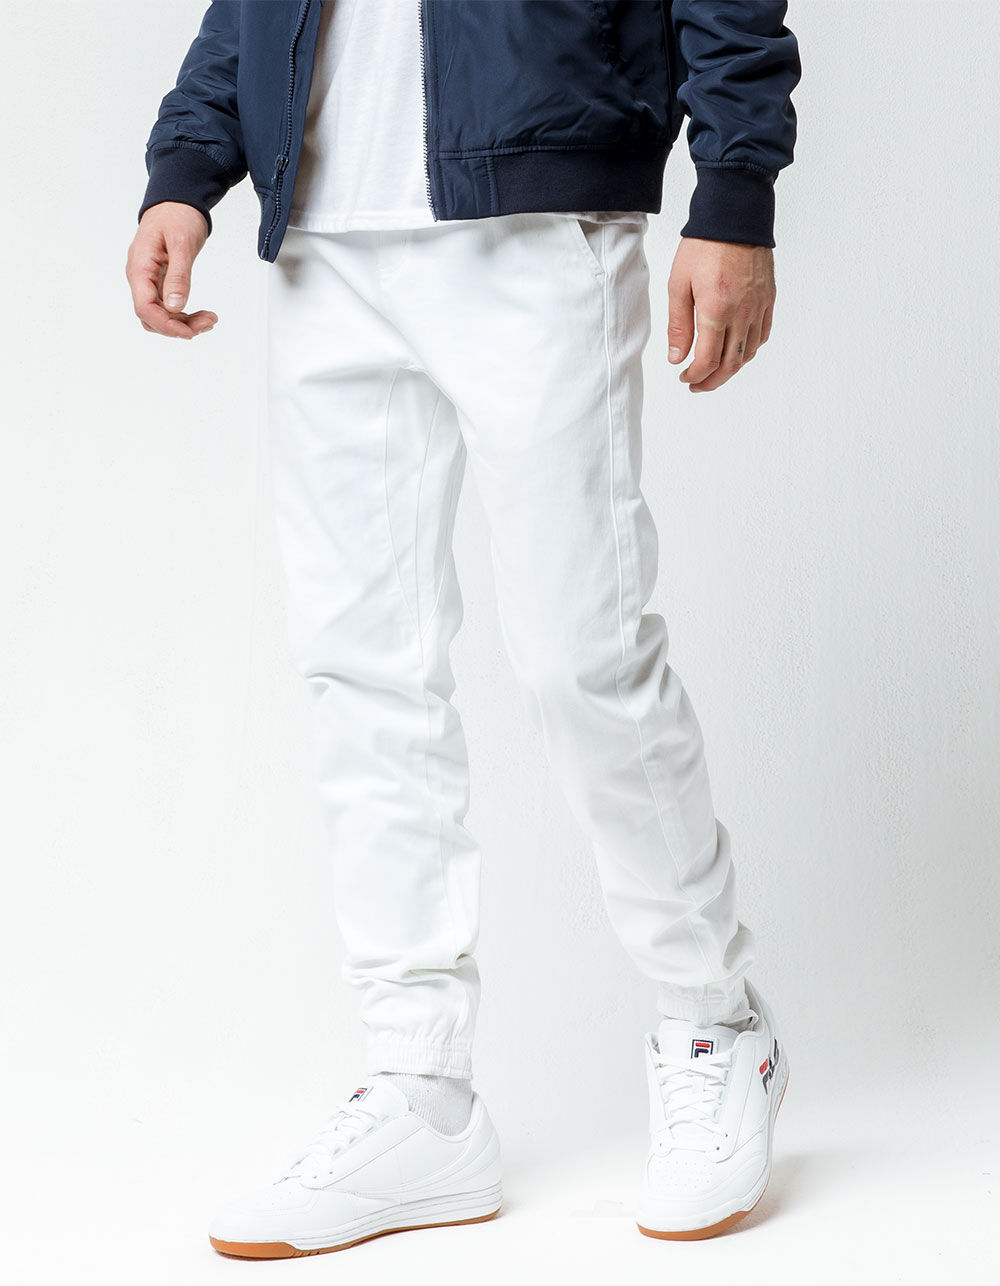 CHARLES AND A HALF Soft White Twill Jogger Pants